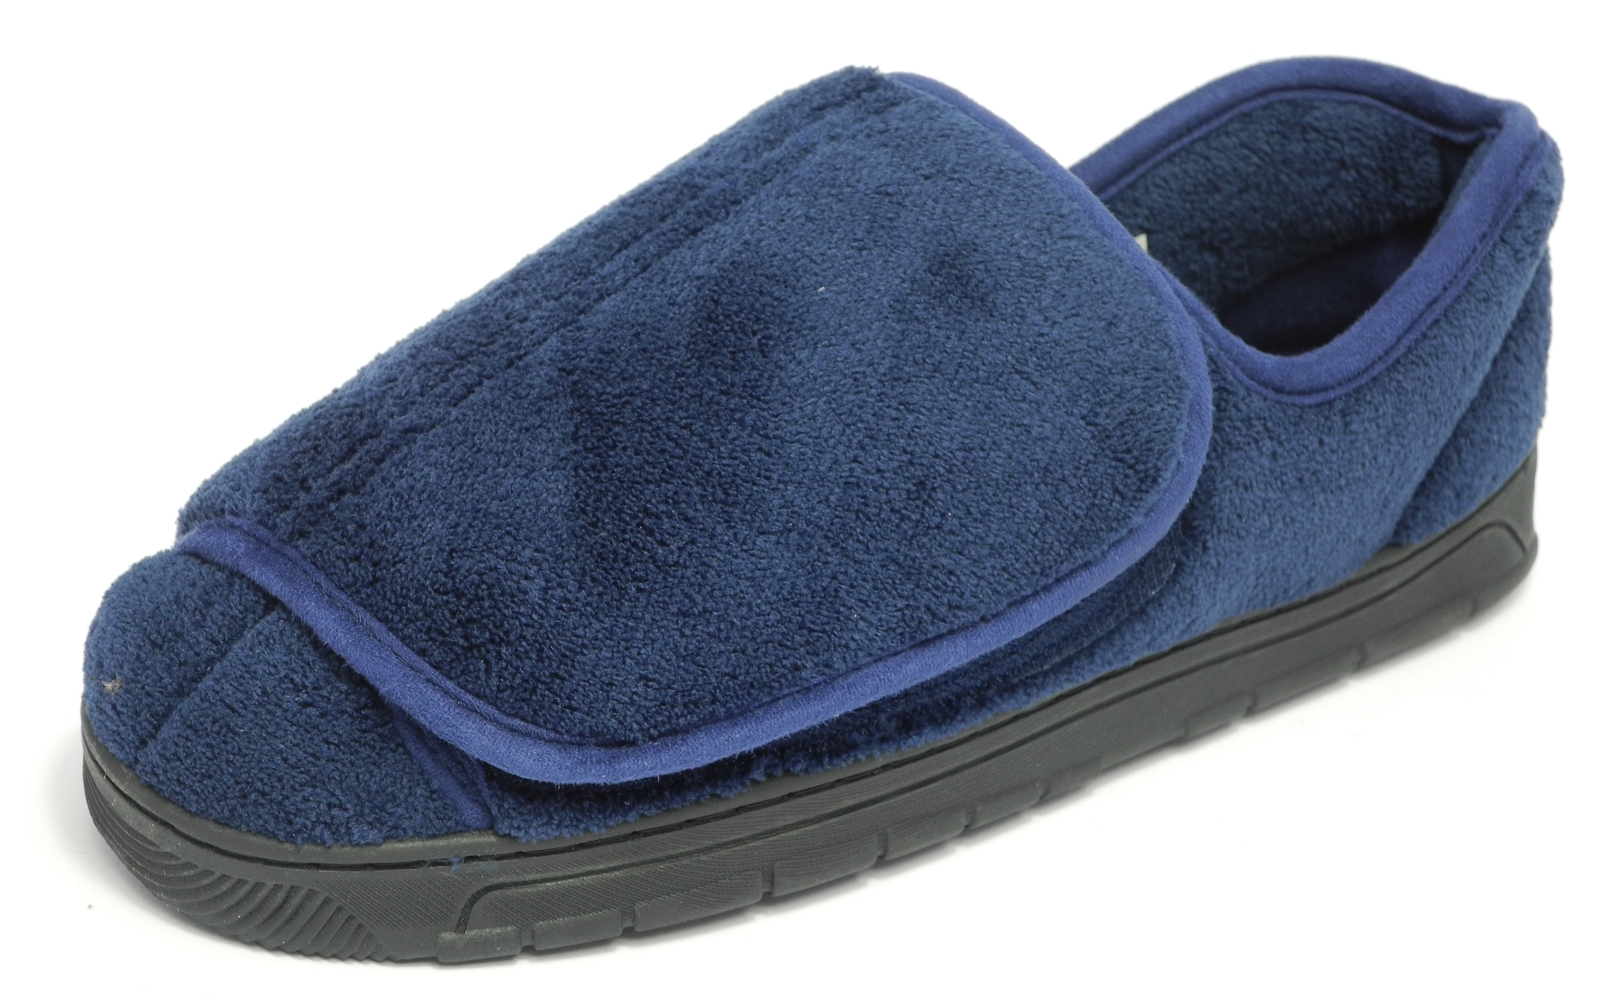 Mens DR KELLER Very Wide Fit Velcro Open Out Slippers Blue Size 6 7 8 9 10 11